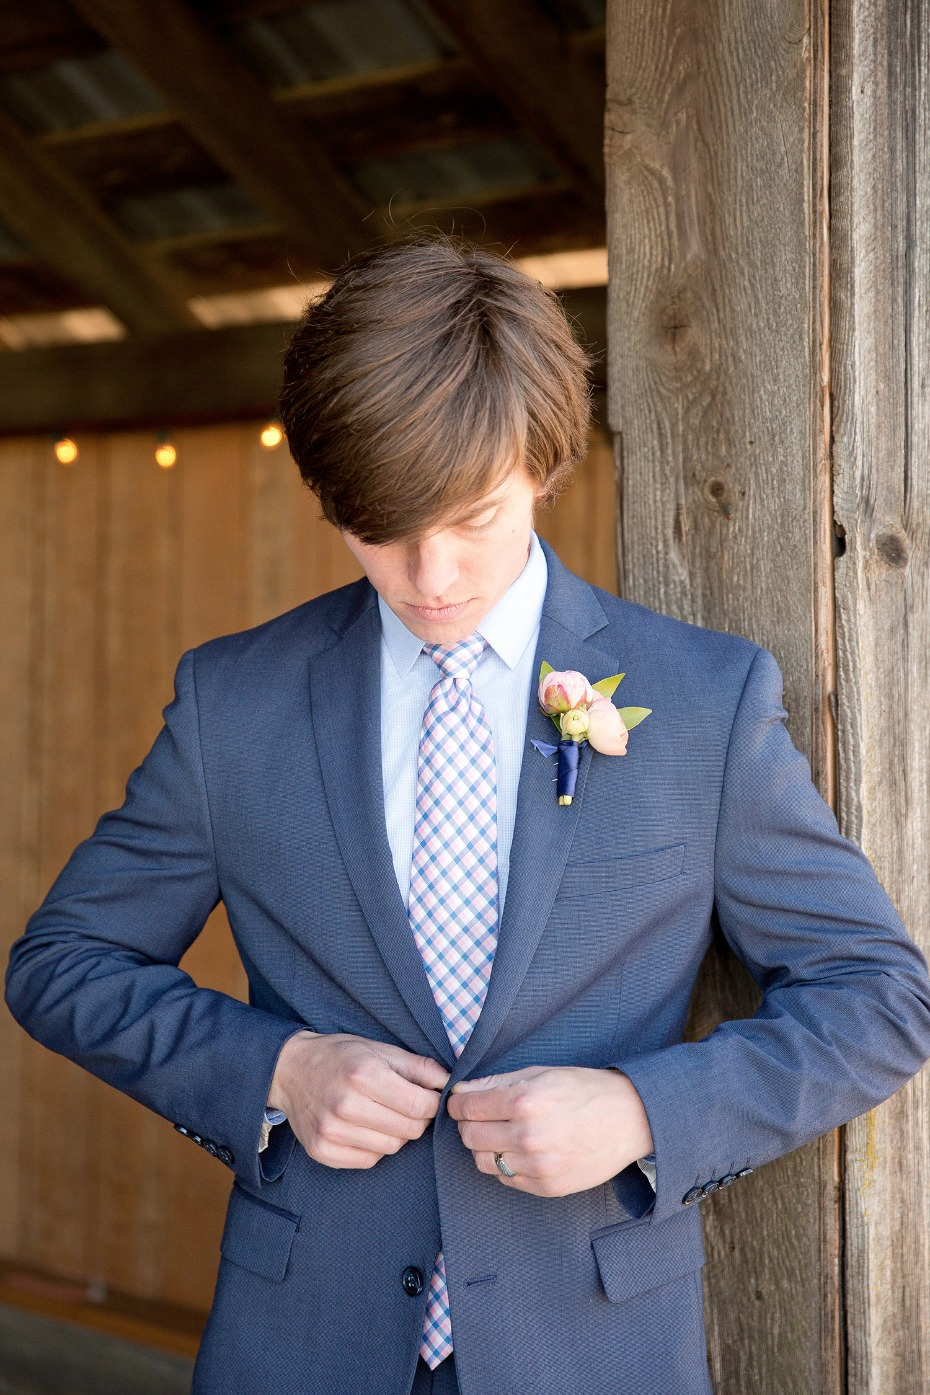 Blue suit for the groom